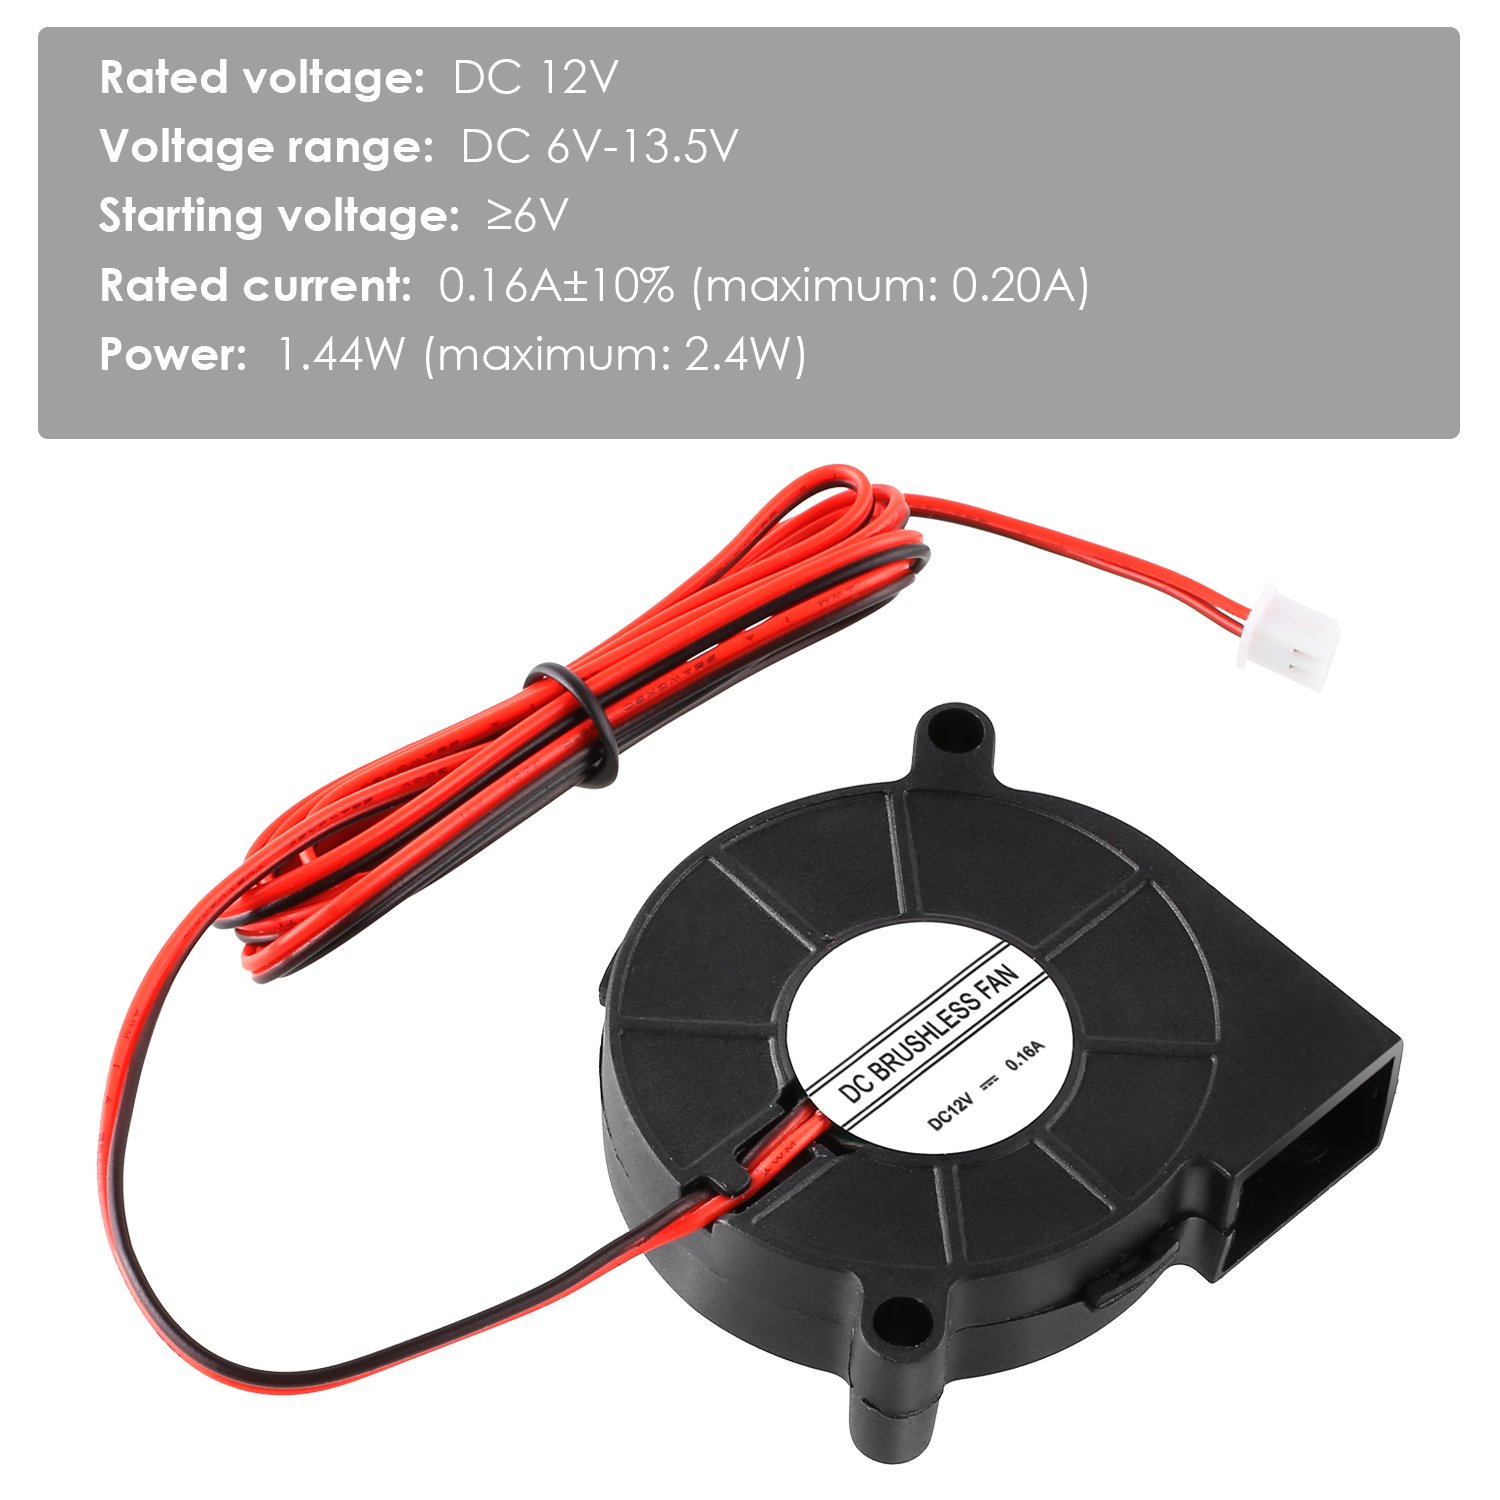 3 Packs Mvpower 3D Cooling Blower Fan DC 12V 2Pin Accessories for 3D Printer Cooler Heatsinks